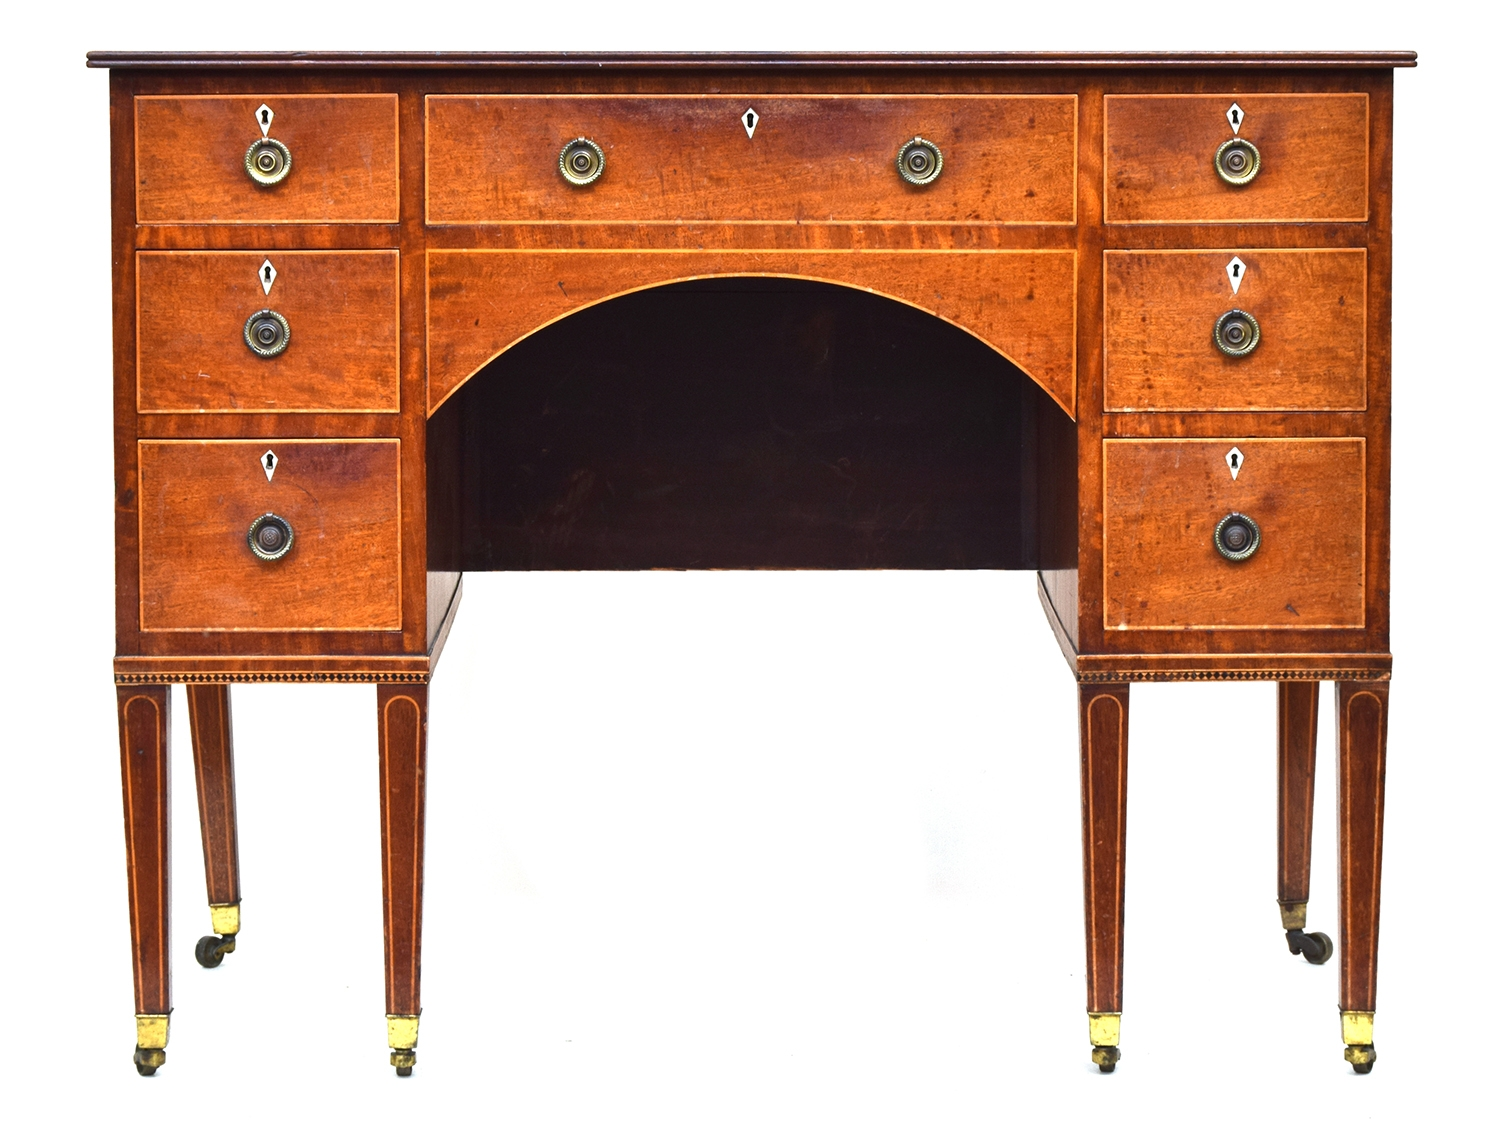 A Regency mahogany kneehole dressing table, with an arrangement of seven drawers, with light wood